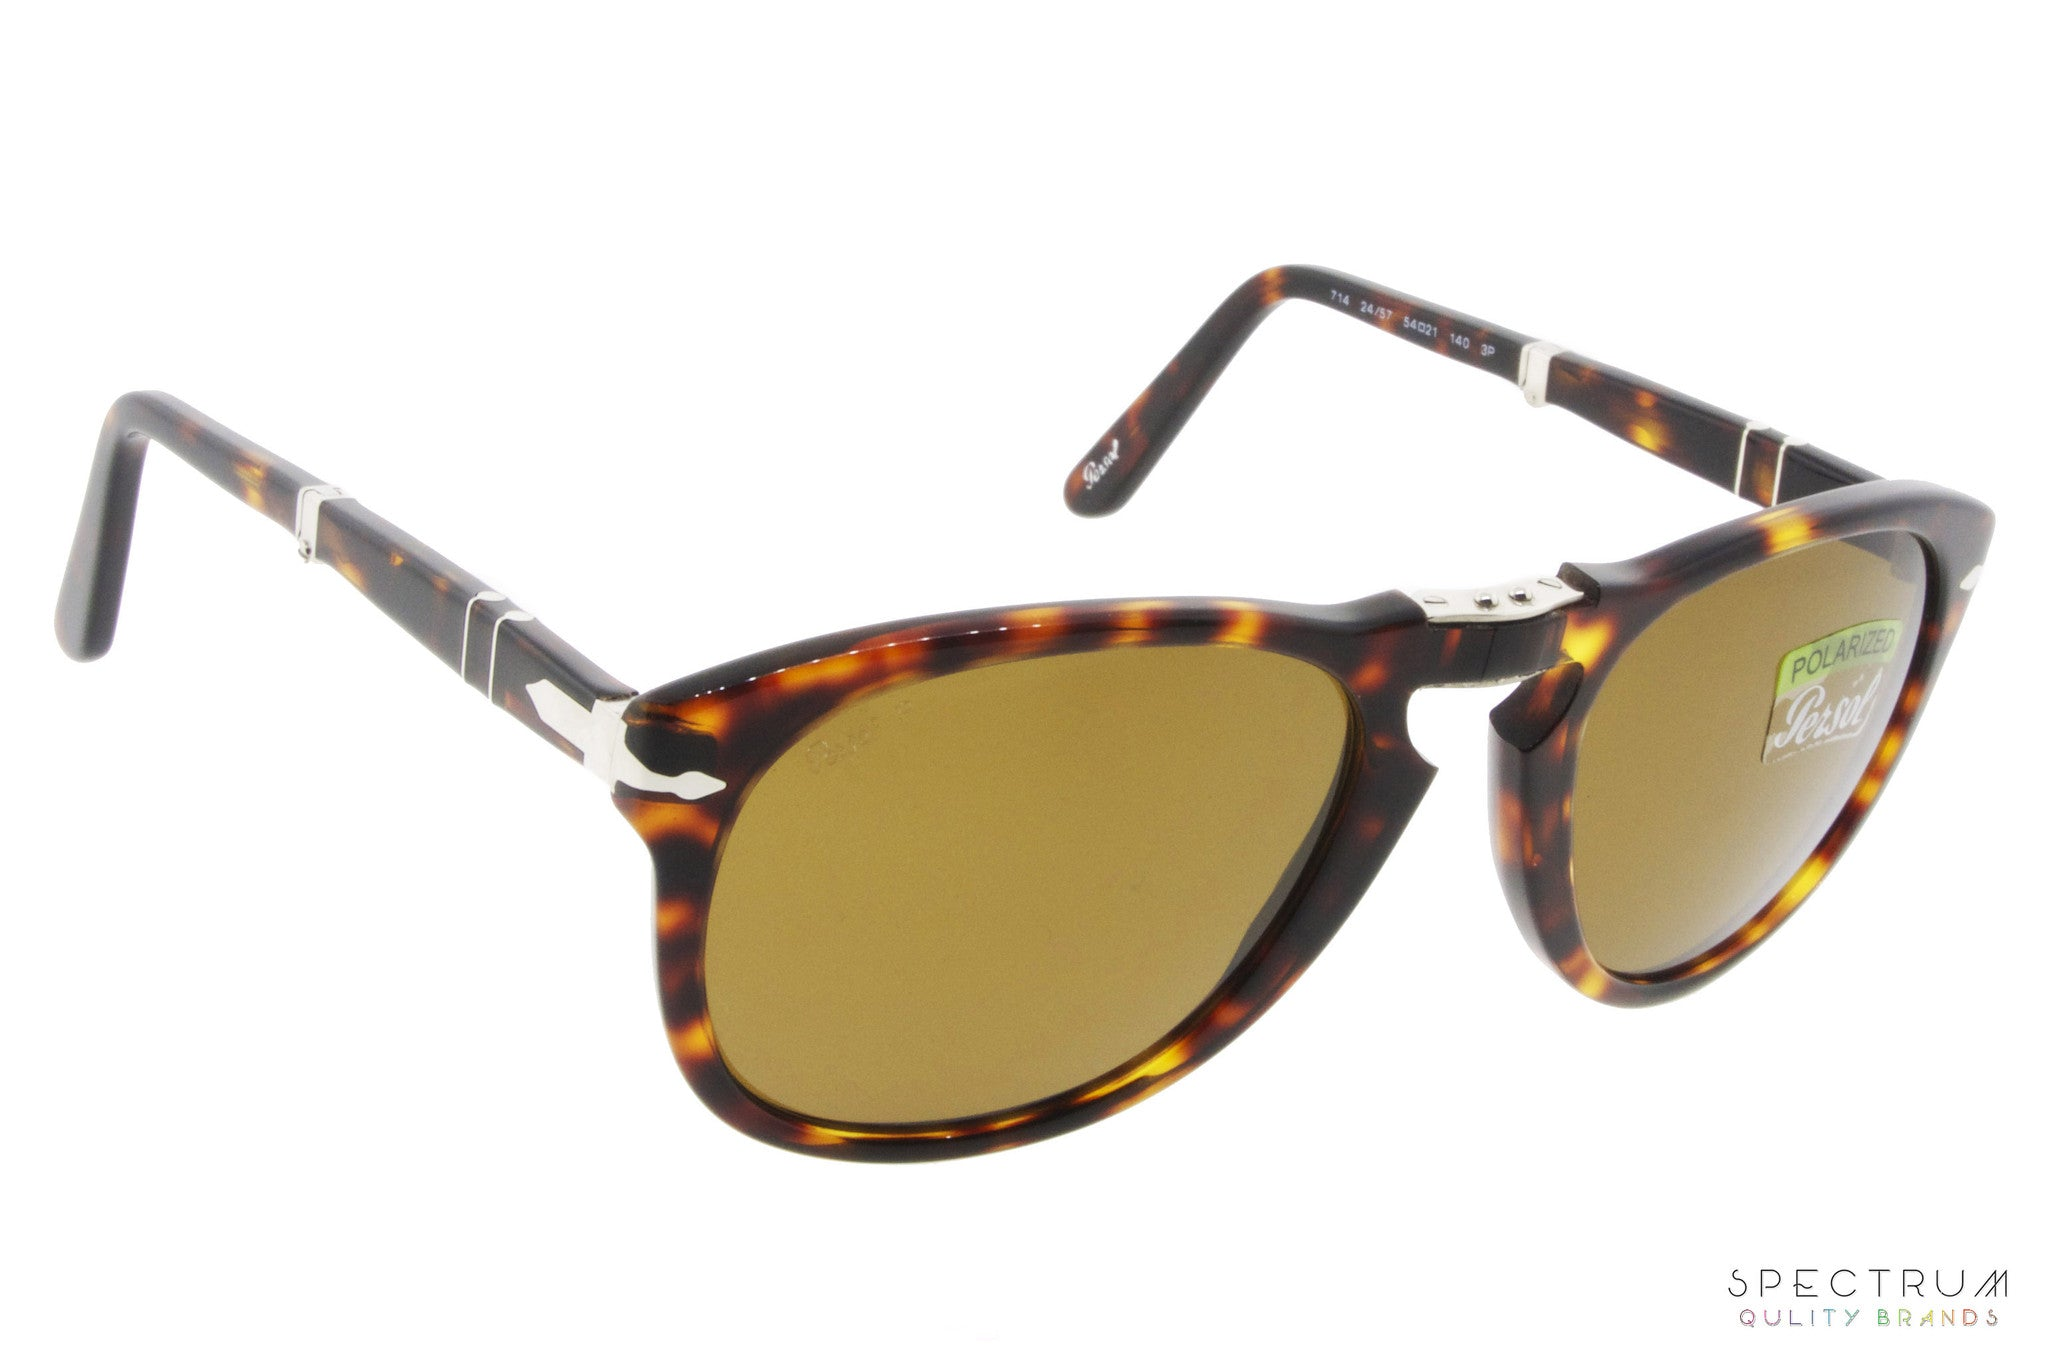 f7943c185b3 Persol Folding Sunglasses 0714 24 57 Havana with Brown Polarized Lenses  Size 54